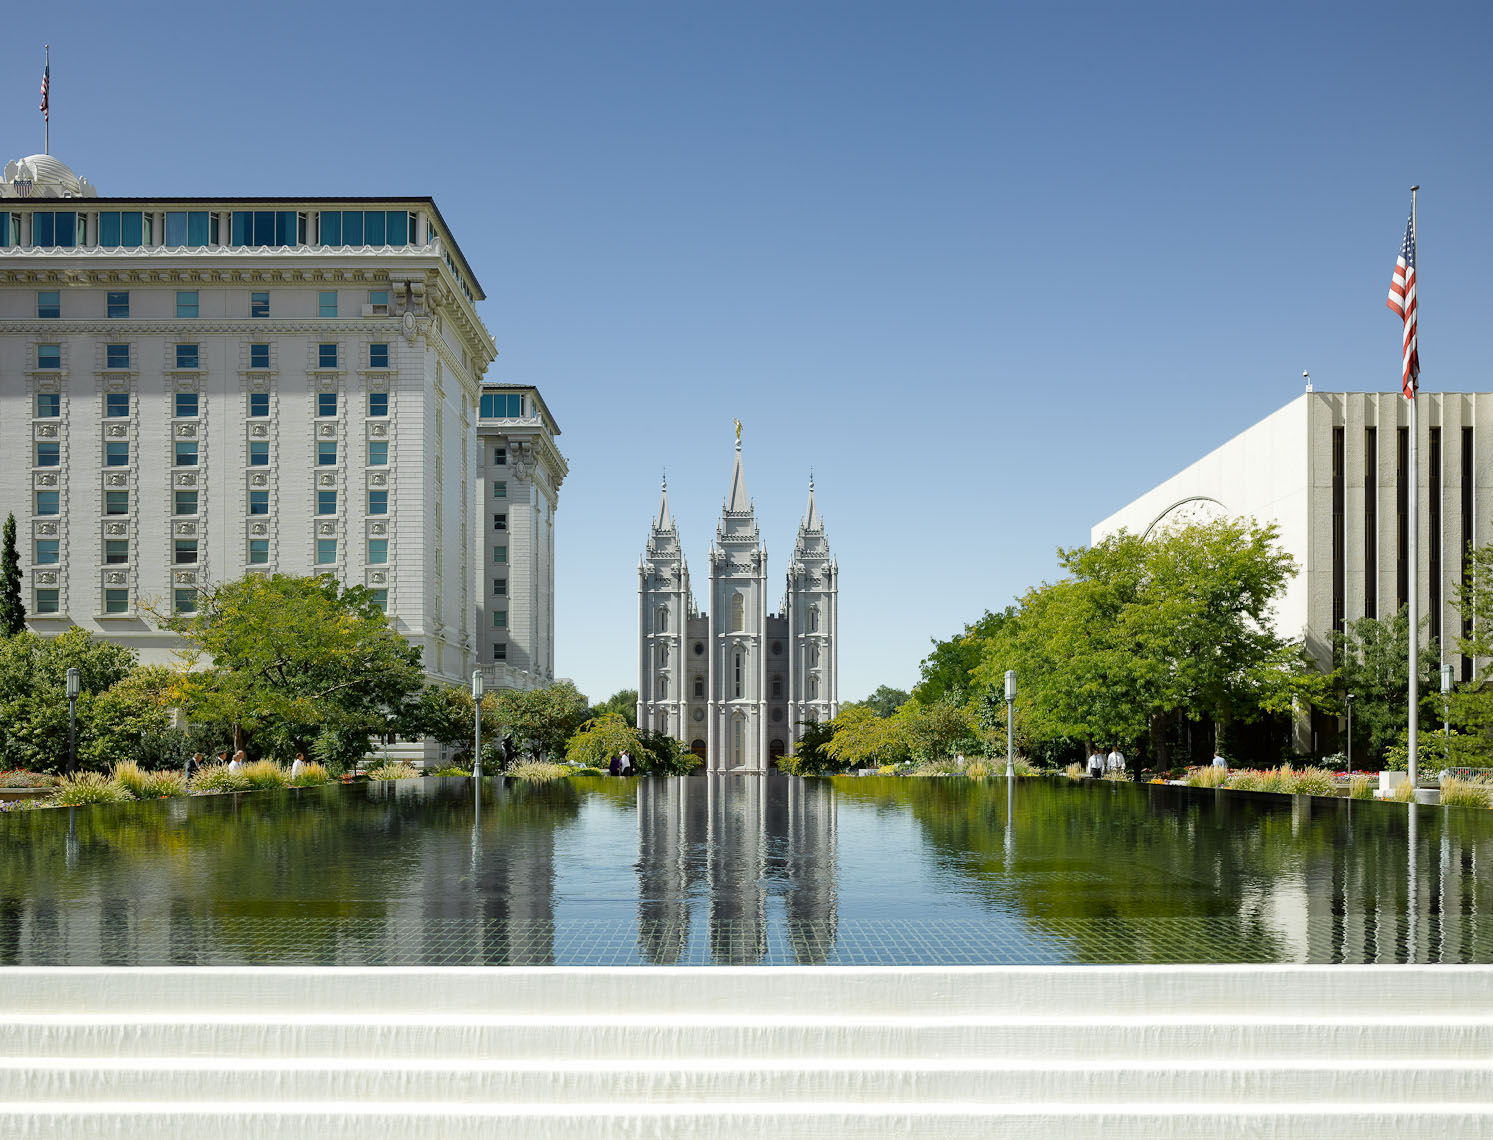 LDS_Temple_Square_006.jpg